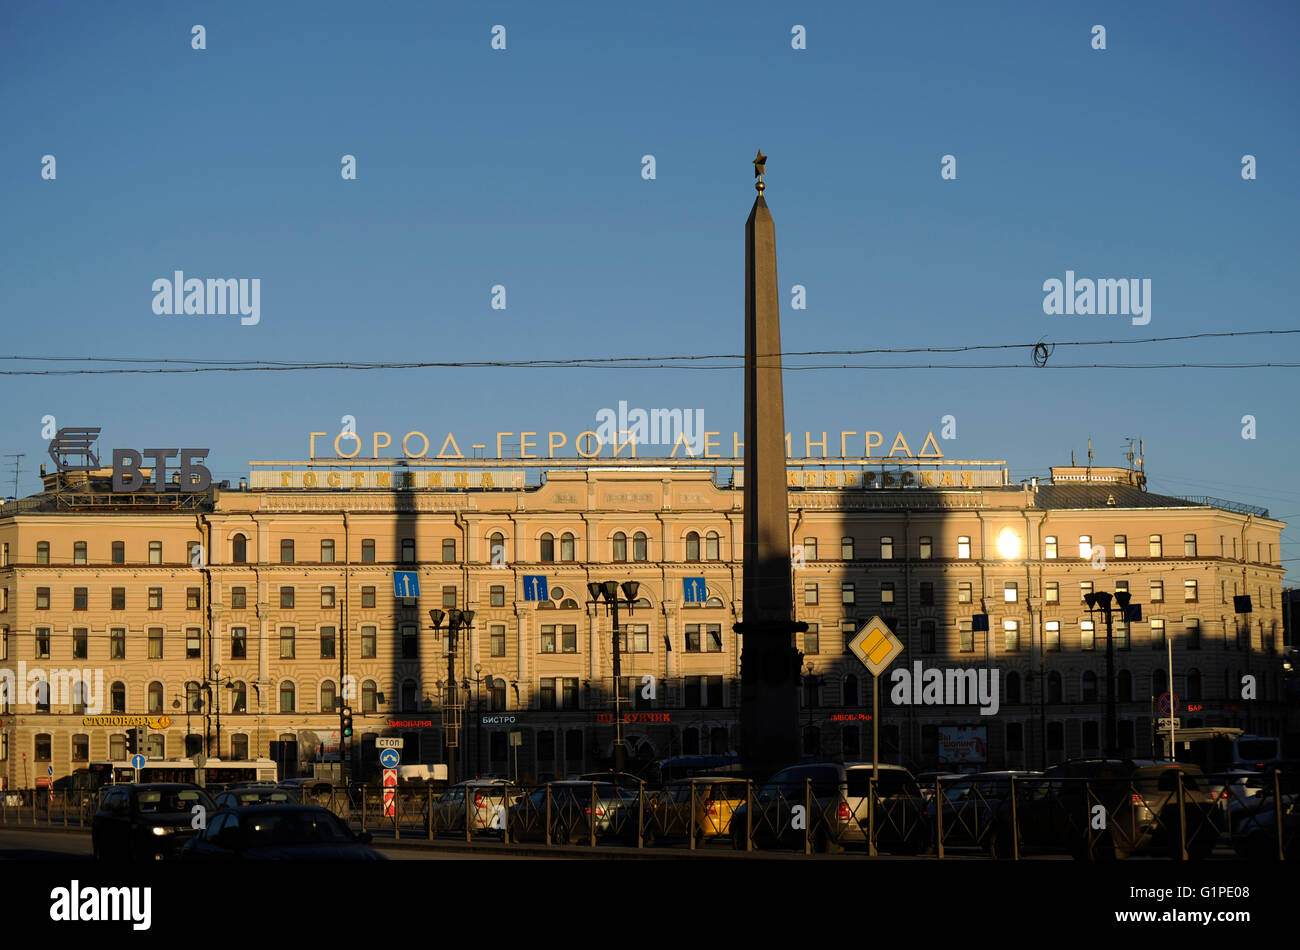 Russia. Saint Petersburg. Vostaniya square with the Leningrad Hero City Obelisk, installed on Victory Day of May - Stock Image